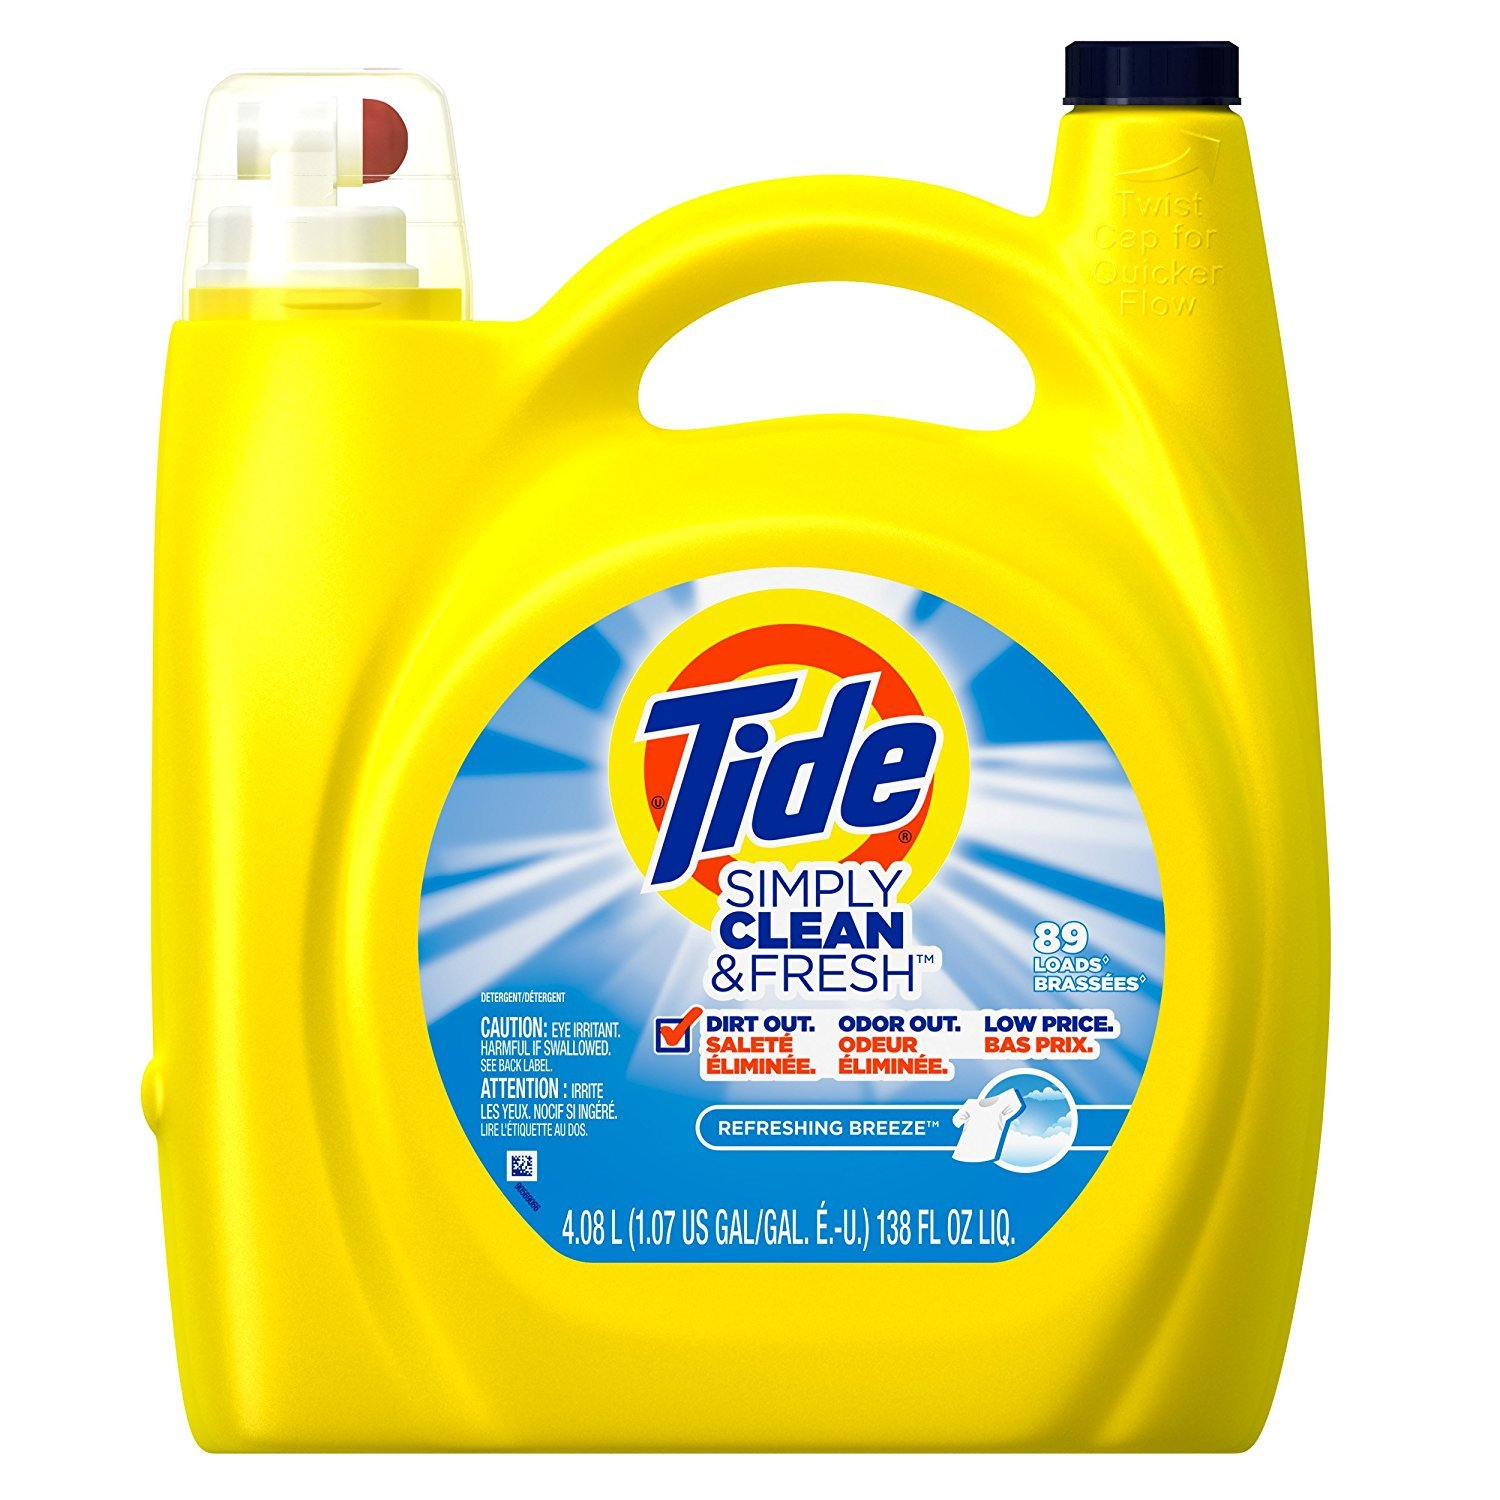 Tide Simple Clean Fresh Liquid Laundry Detergent, 138 Ounce (4.08 L), Refreshing Breeze (5pack 138 Ounce)